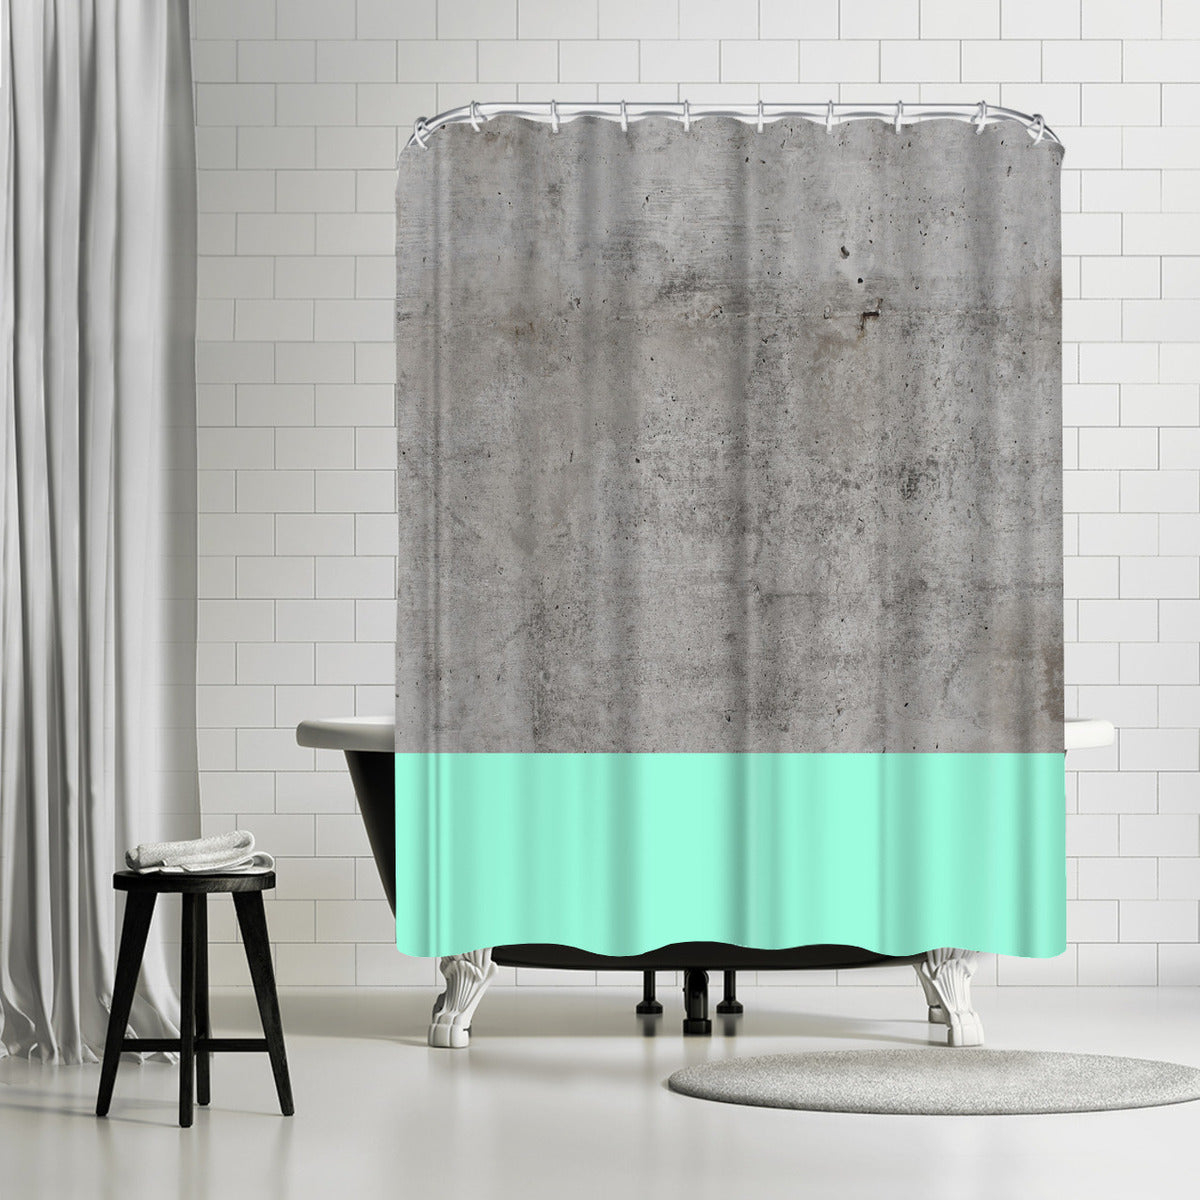 Sea On Concrete by Emanuela Carratoni Shower Curtain - Shower Curtain - Americanflat